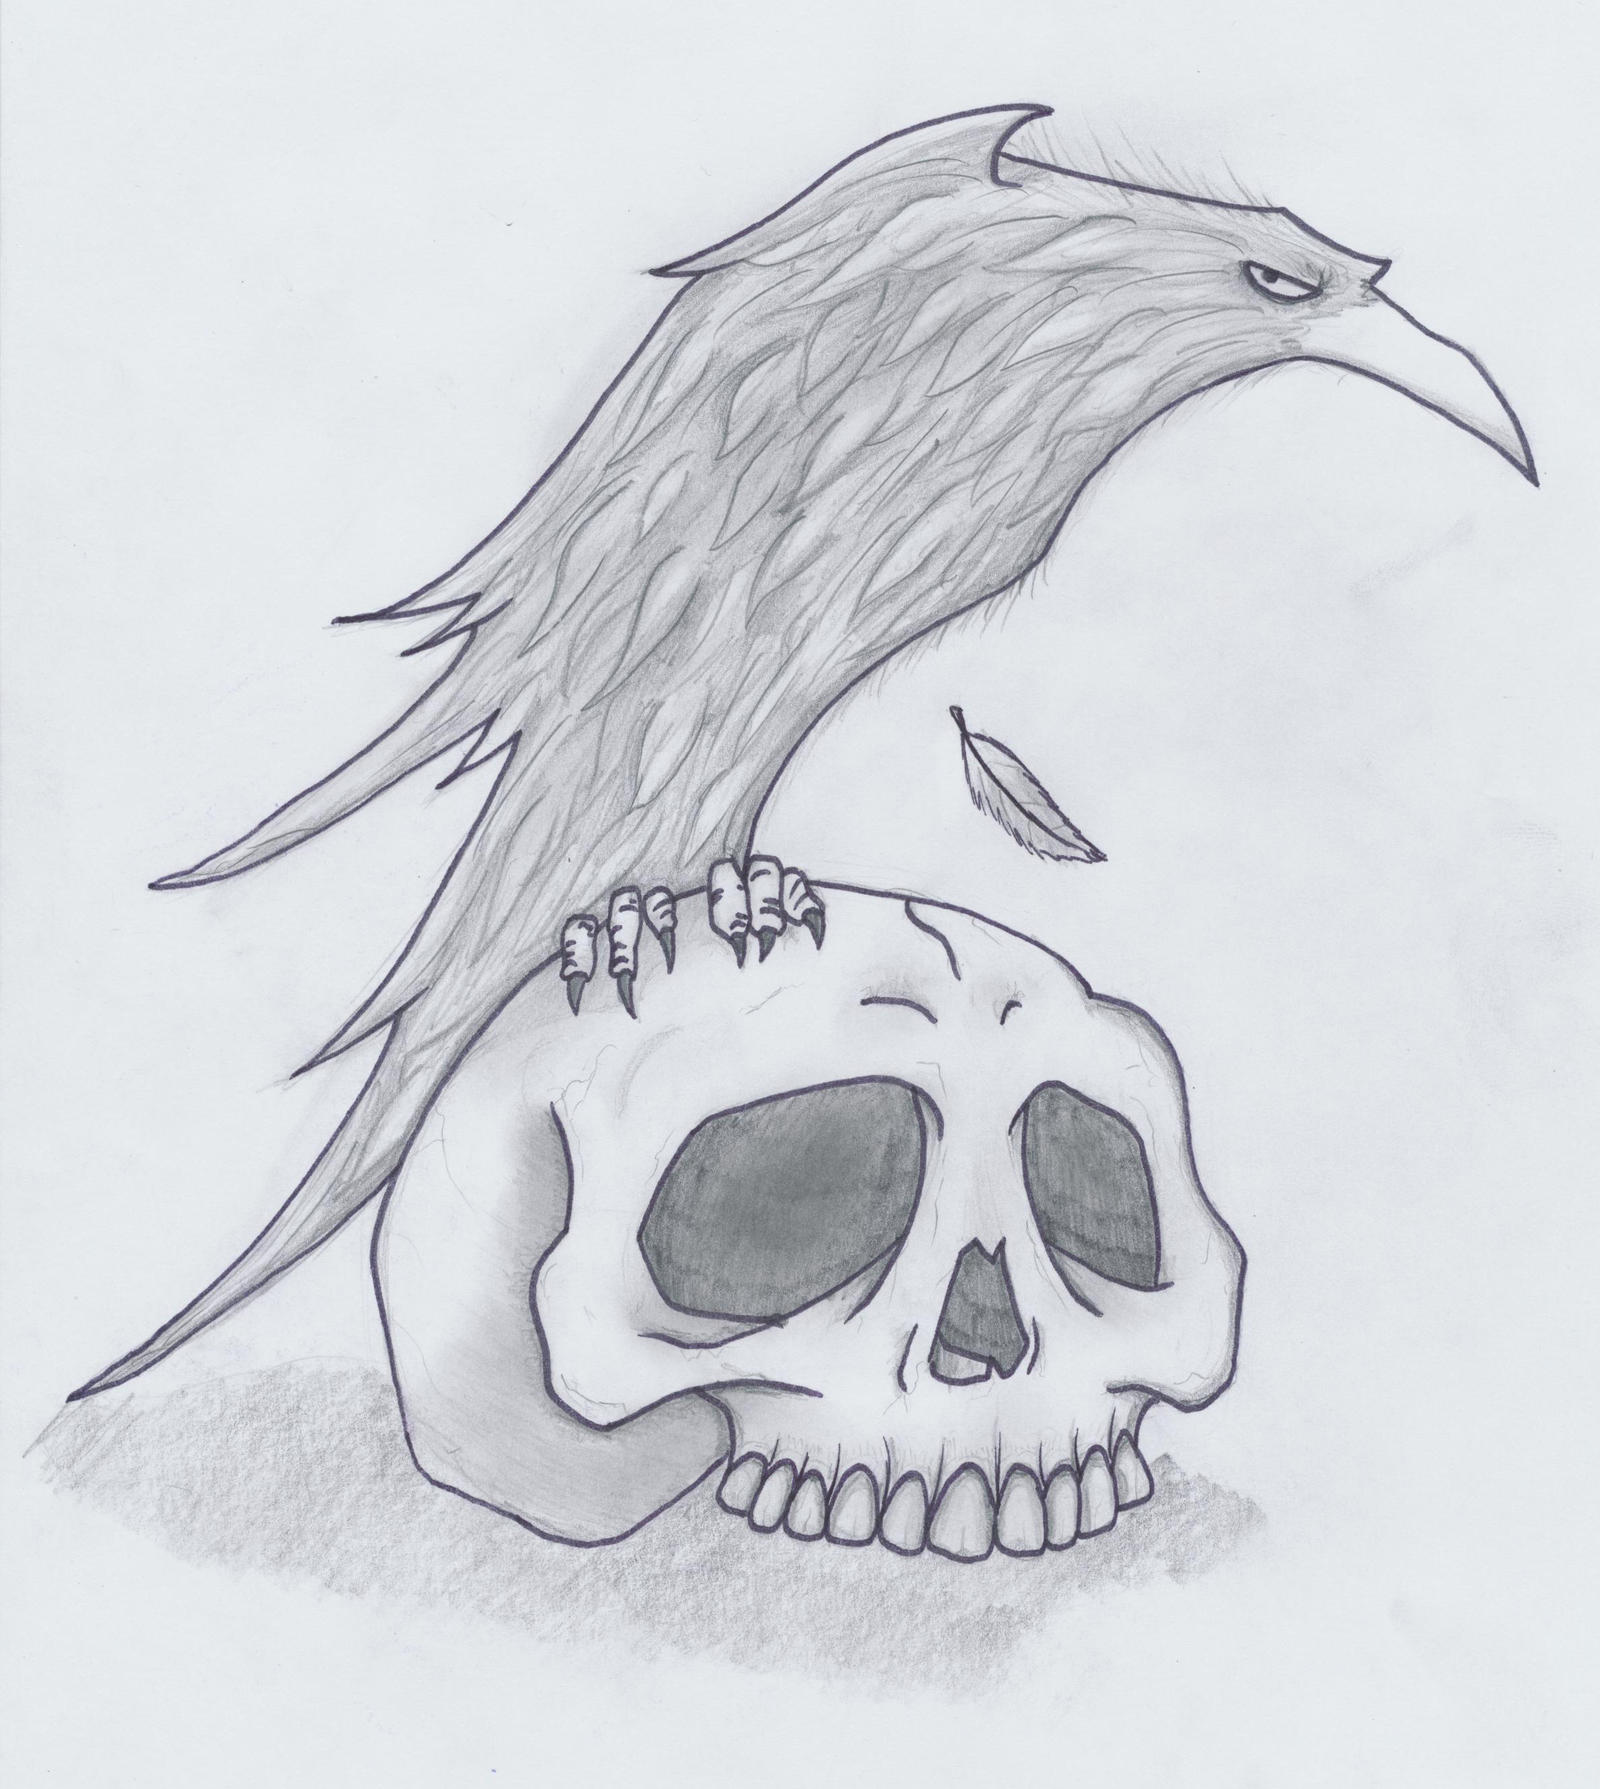 Skulls Tattoo Design Wallpaper: Raven Skull Tattoo Design By HellDemonDavey On DeviantArt